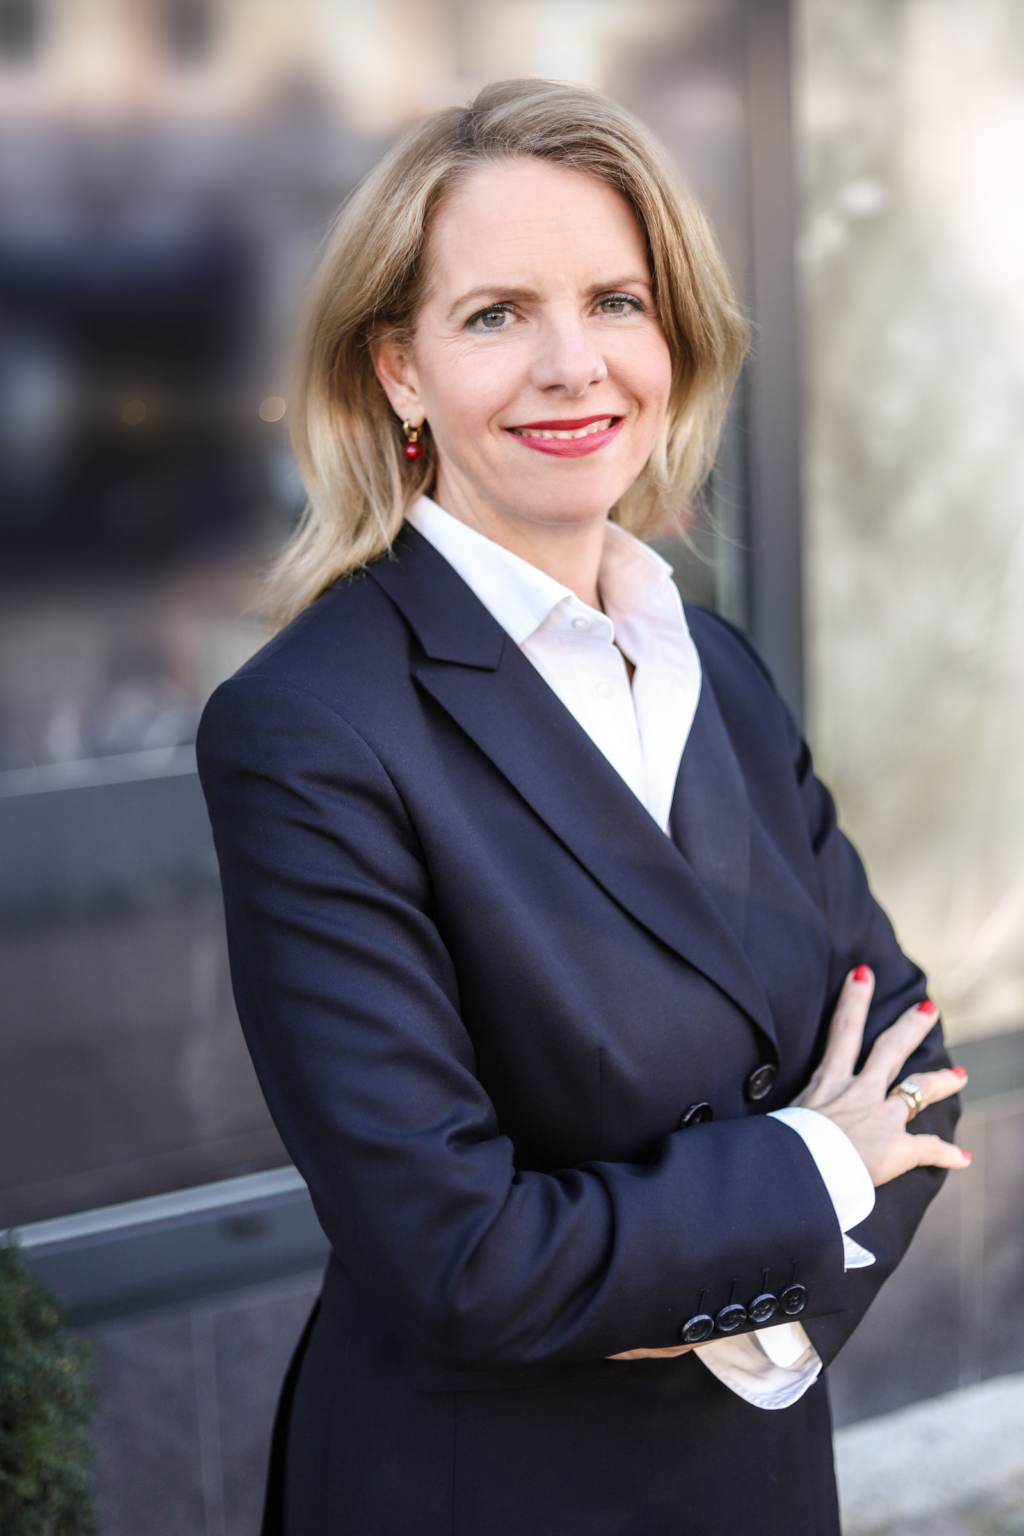 Wiebke Ståhl – Bugatti International with an ambitious vision for the future